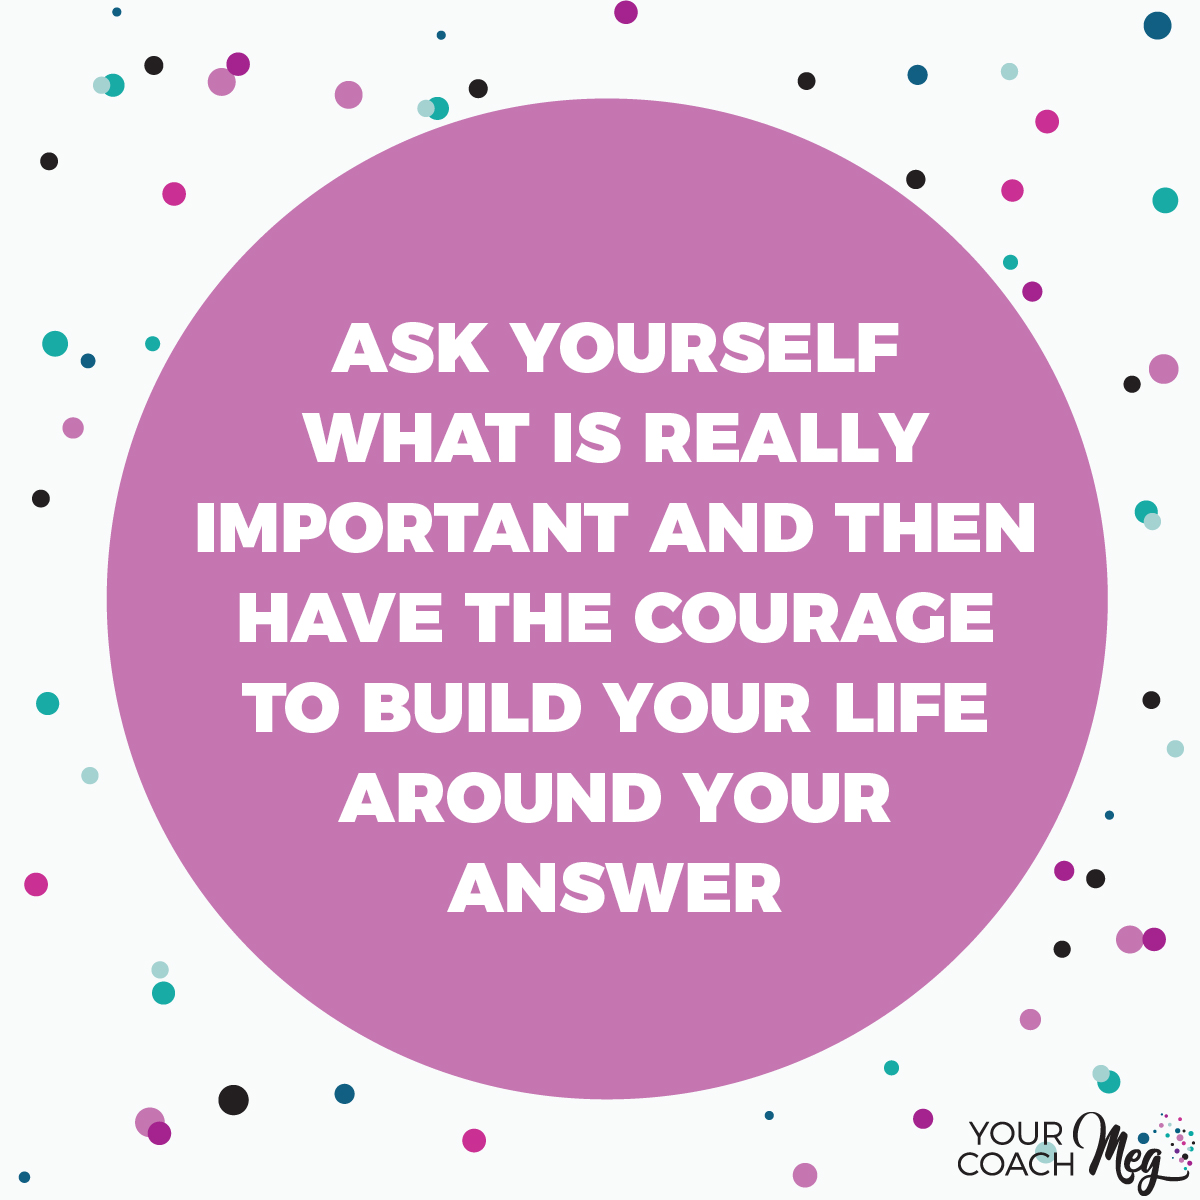 Ask yourself what is really important and have the courage to build your life around the answer